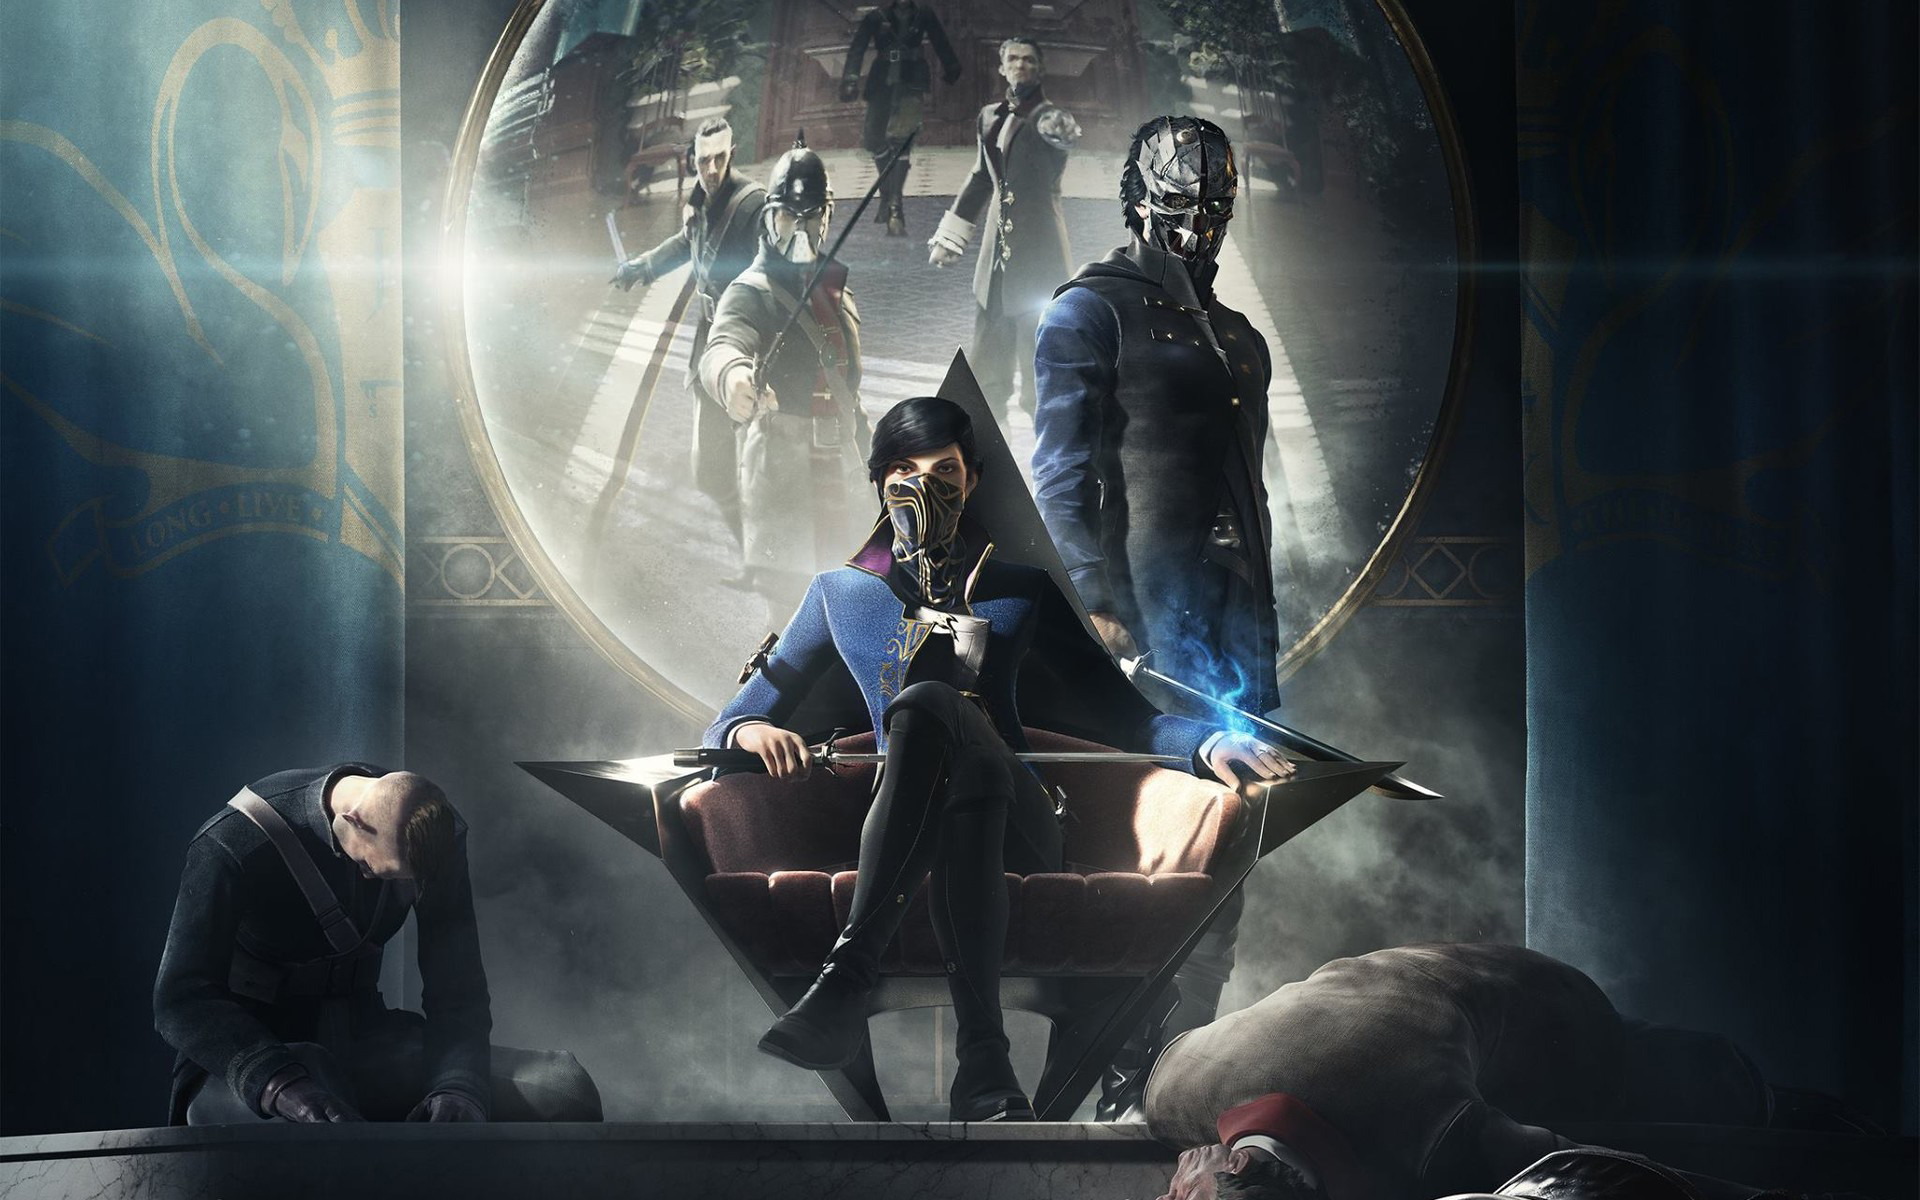 Dishonored 2 2016 2, HD Games, 4k Wallpapers, Images